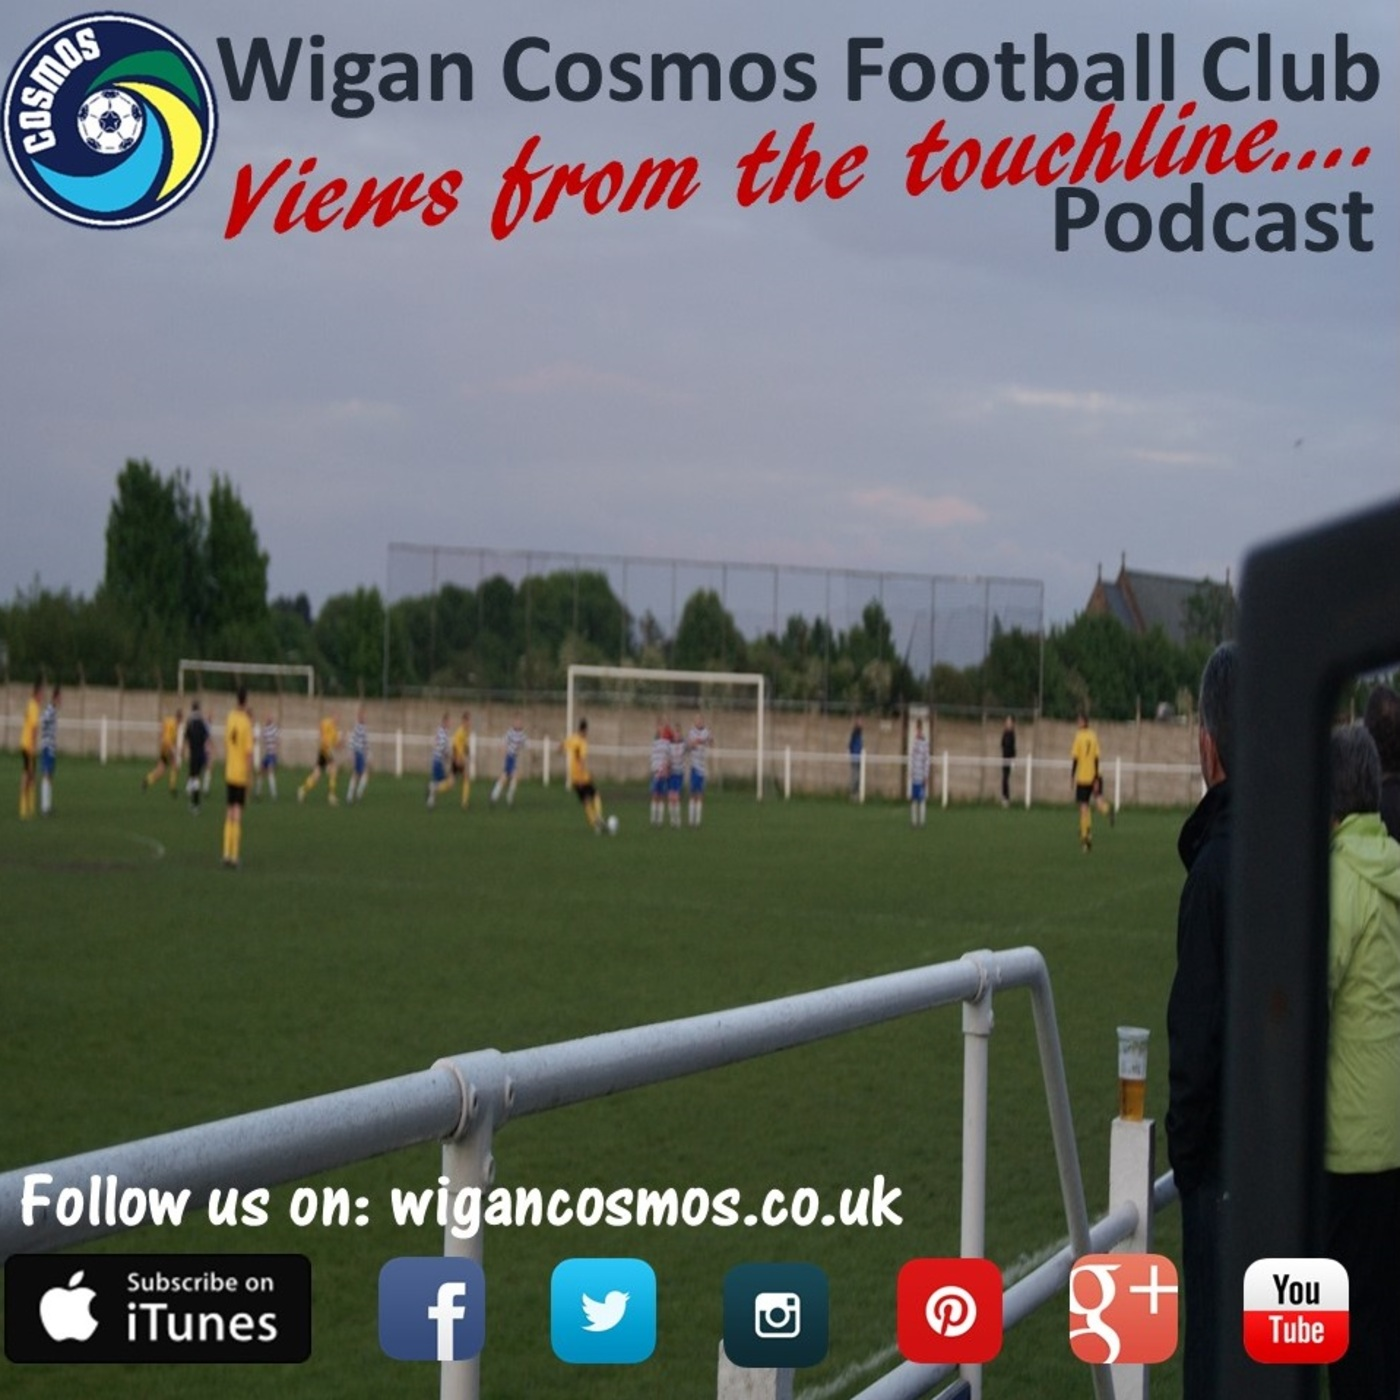 Wigan Cosmos Football Club